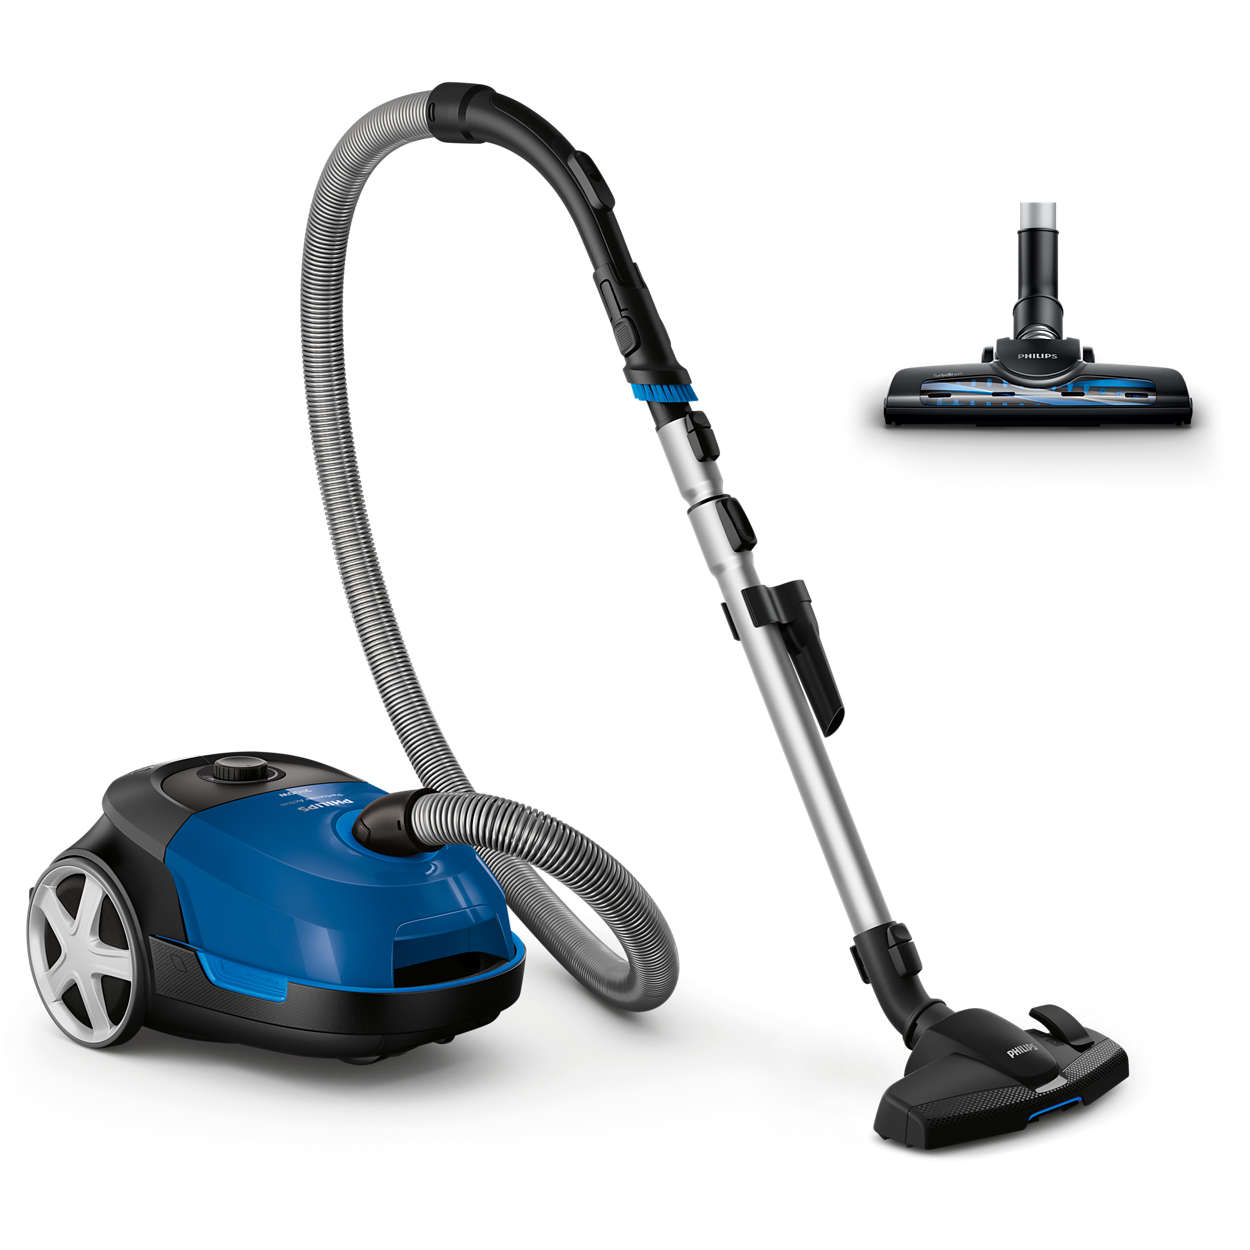 High suction power for a deep clean